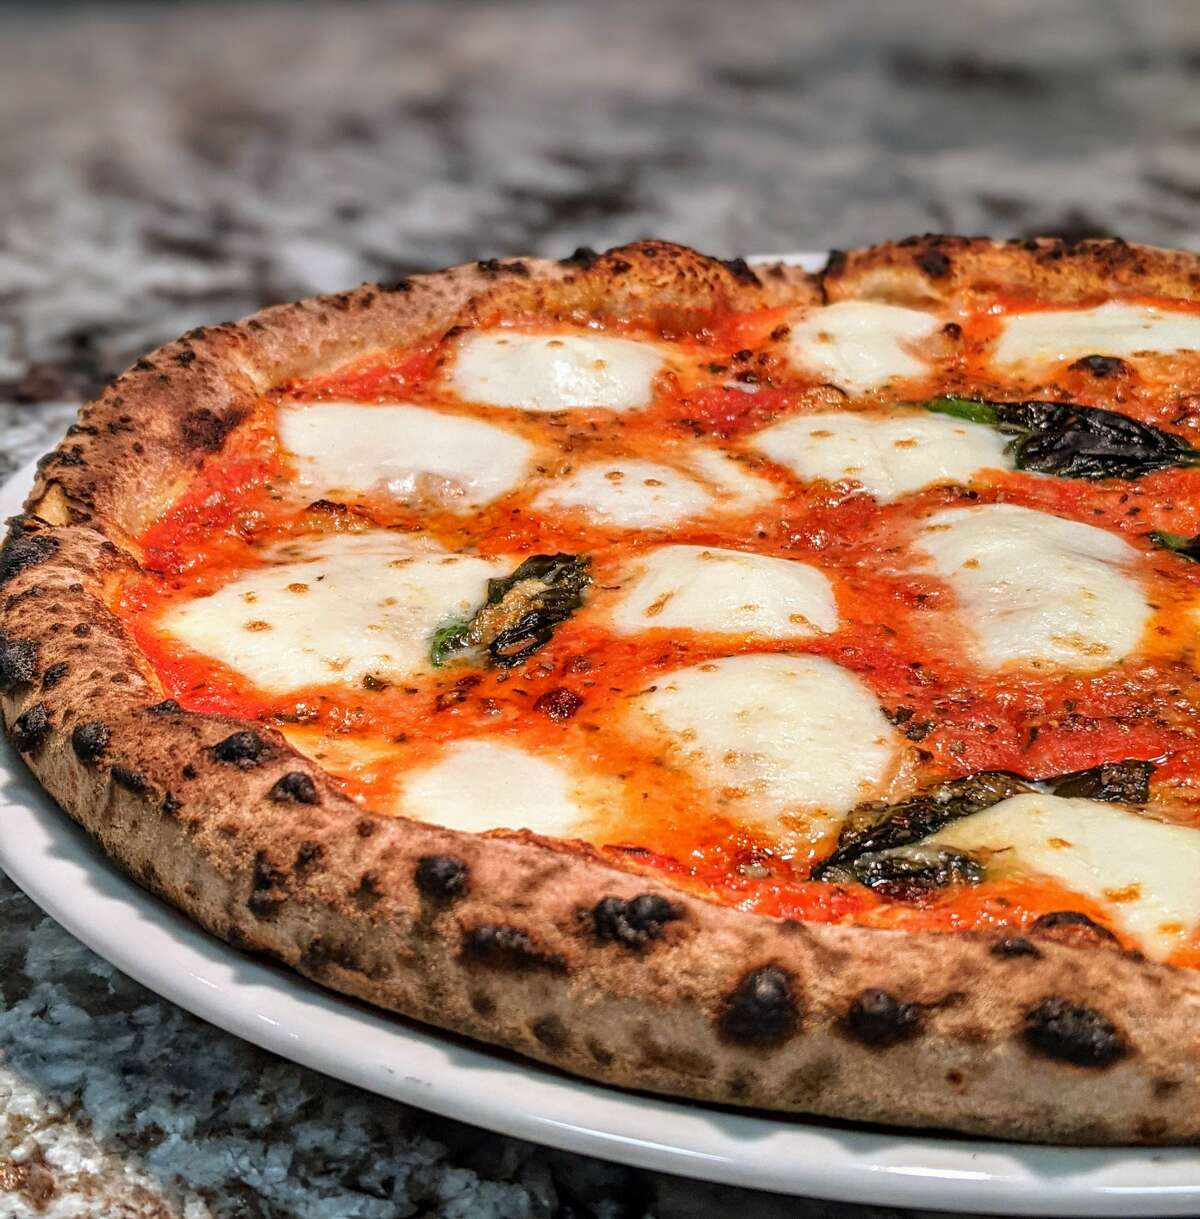 Pizza is cooked in a 750-degree wood-fired oven at Nic's Trattoria in East Greenbush. (Photo by Konrad Odhiambo/For the Times Union.)